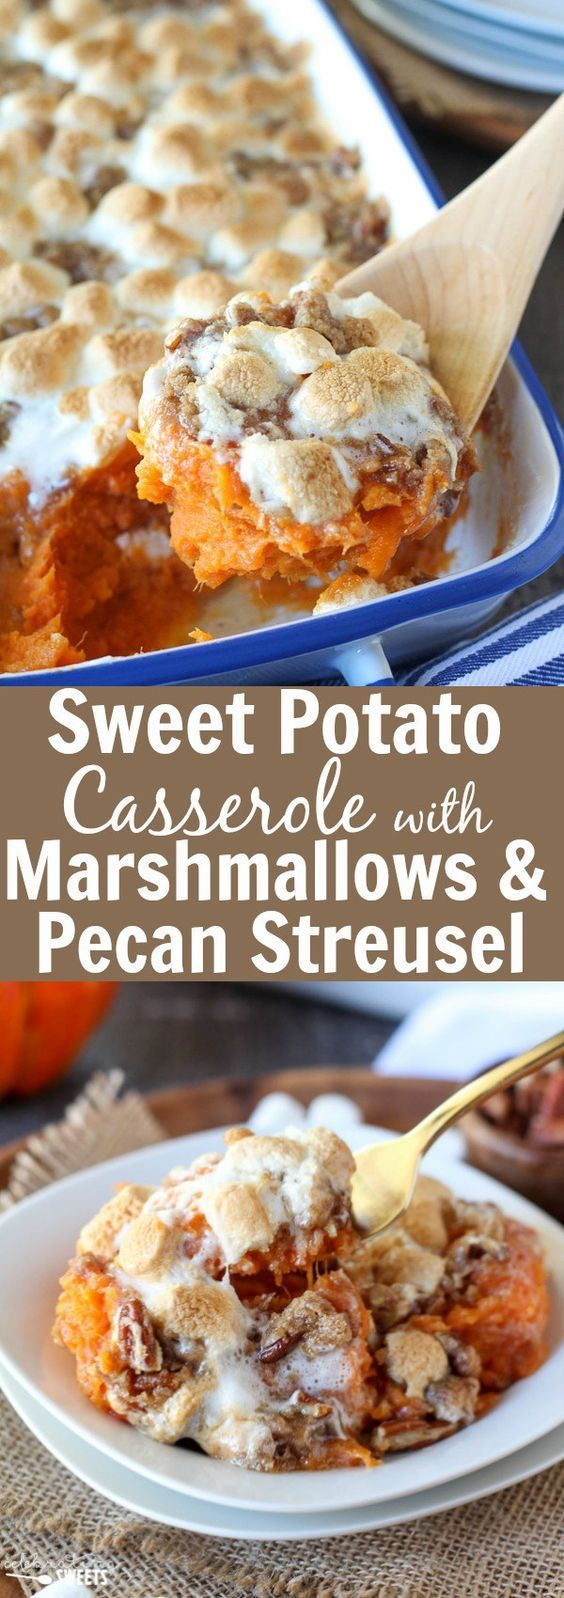 Sweet Potato Casserole with Marshmallows and Pecan Streusel - Mashed sweet potato casserole topped with toasted marshmallows and a brown sugar cinnamon pecan streusel. The perfect side dish for Thanks (Holiday Sweet Recipes)